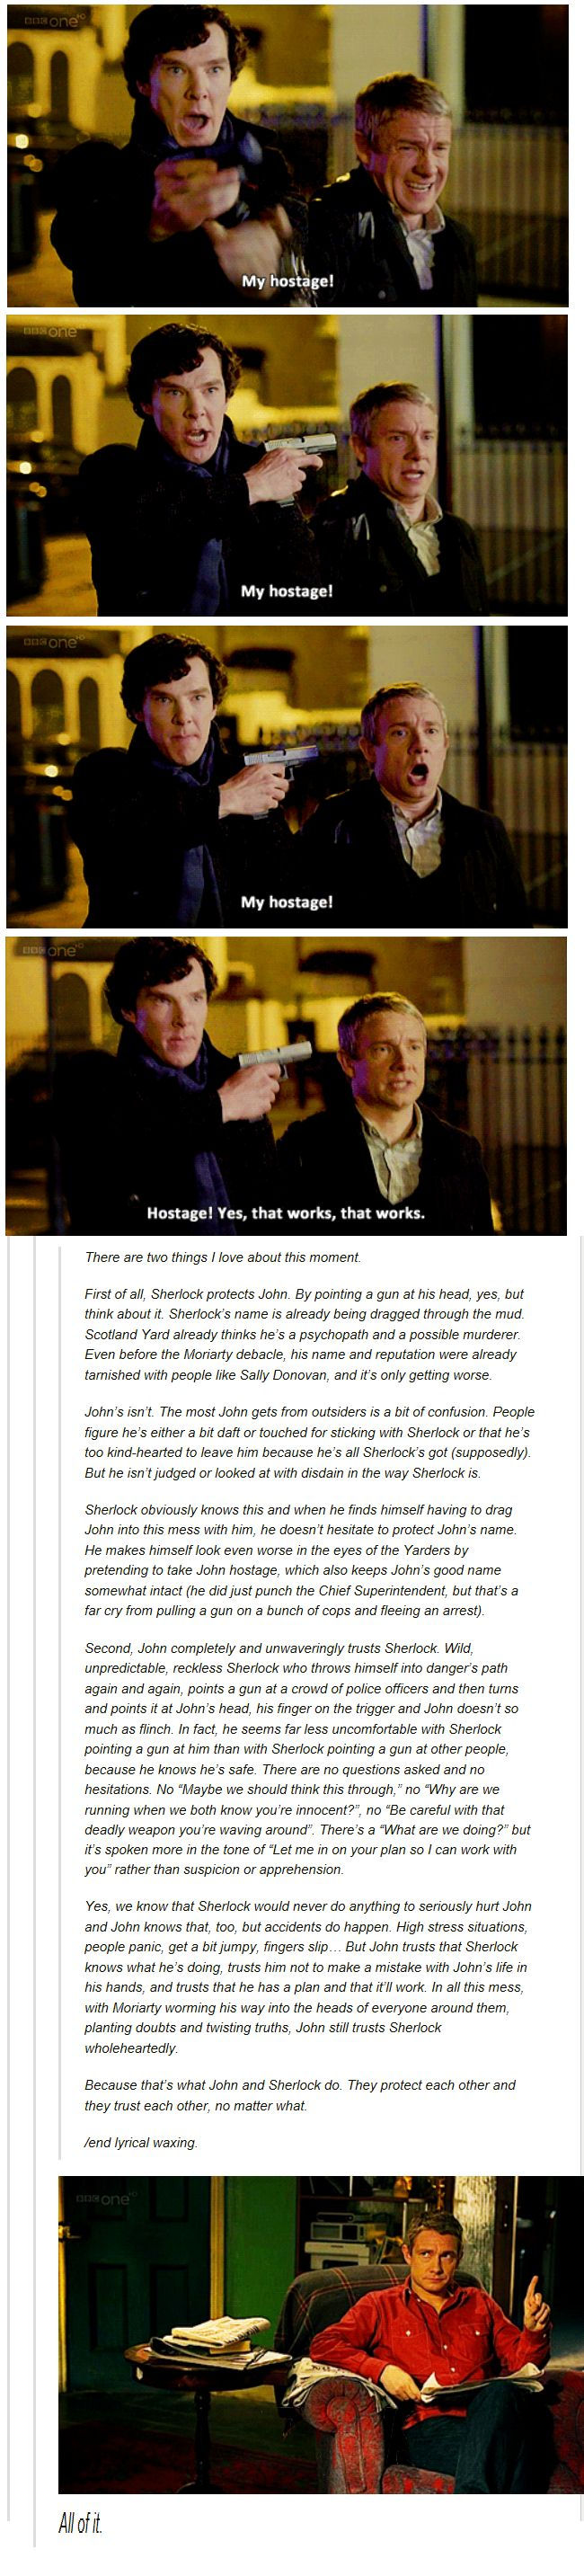 """""""It only takes a moment, but watching John's face go from near panic (Sherlock took a gun and is pointing it at the police, some of which are still our friends/ he's snapped and I can barely watch), relief (he's not pointing it at them anymore/ its pointed at me, I can deal with this), realization (oh, he's got a plan), and finally that face that looks like he's popping over to Tesco's for milk. By the fourth pic there is not a shred of worry left in John's face, emotions reined in."""" :D"""